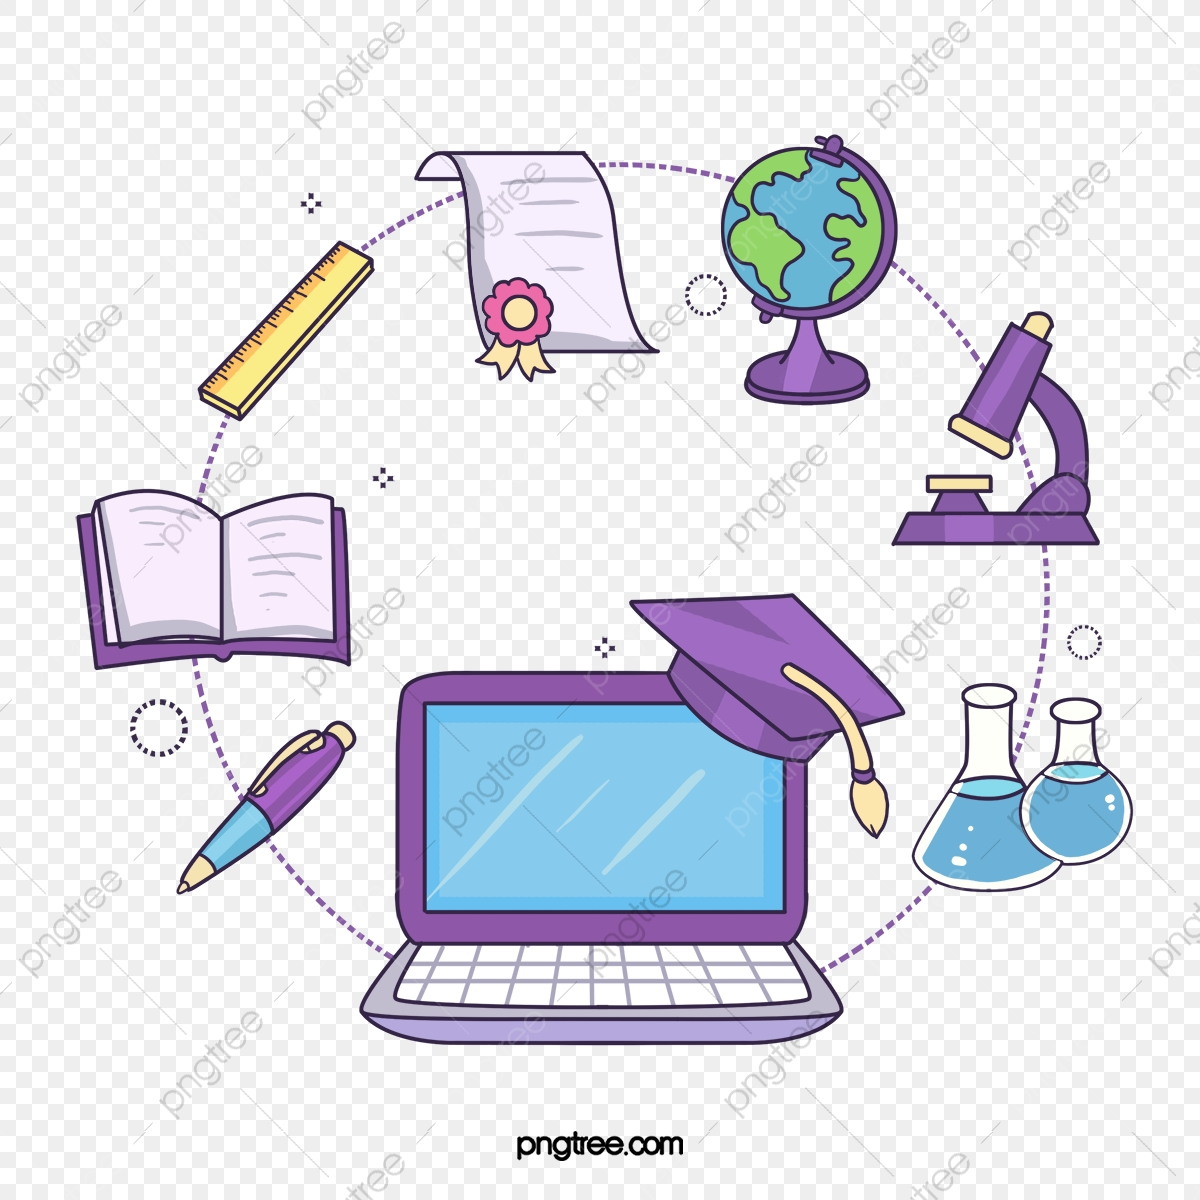 Computer Research Png - Online Teaching Linear Education Information, Computer, Online ...